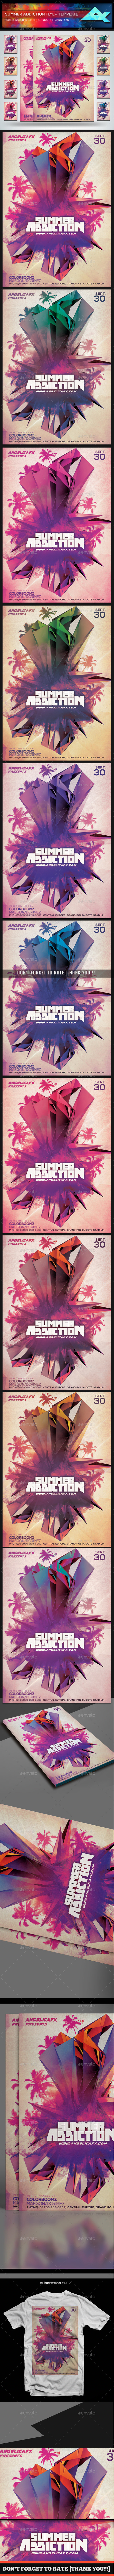 Summer Addiction Flyer Template